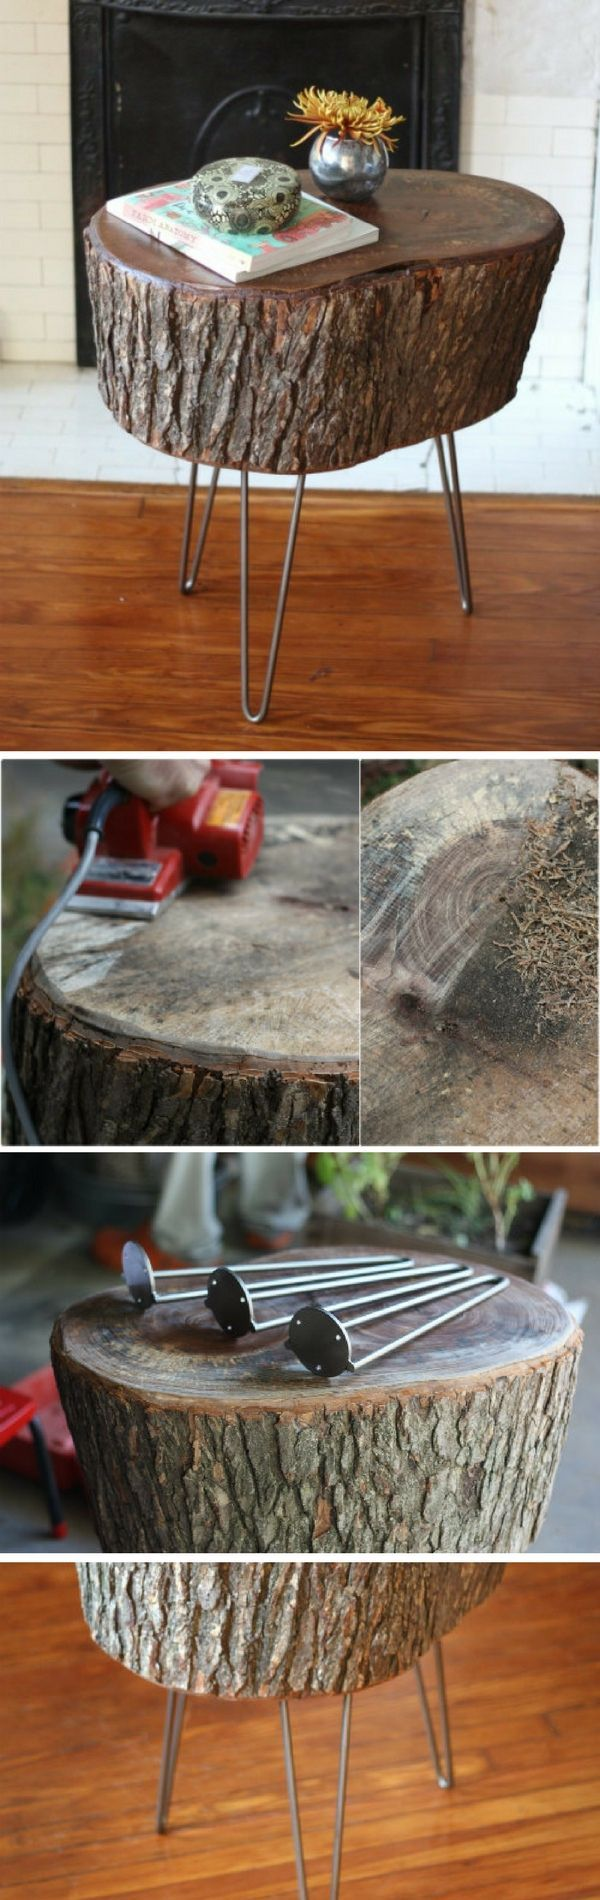 Check out this easy idea on how to make a #DIY tree stump table with hairpin legs #rustic #homedecor #budget #project @istandarddesign